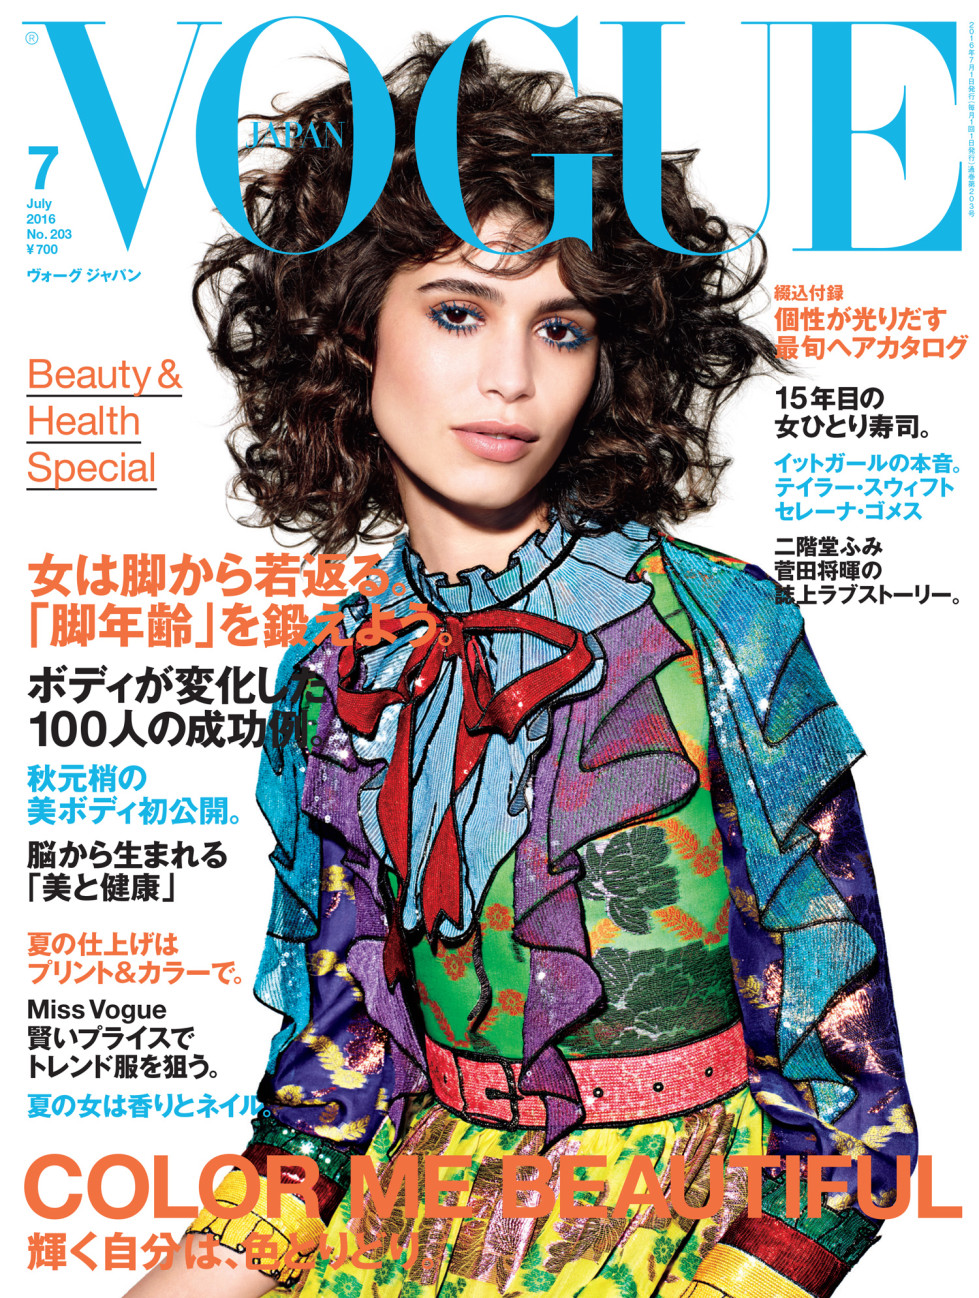 Giovanna-Battaglia-Vogue-Japan-June-2016-979x1298.jpg